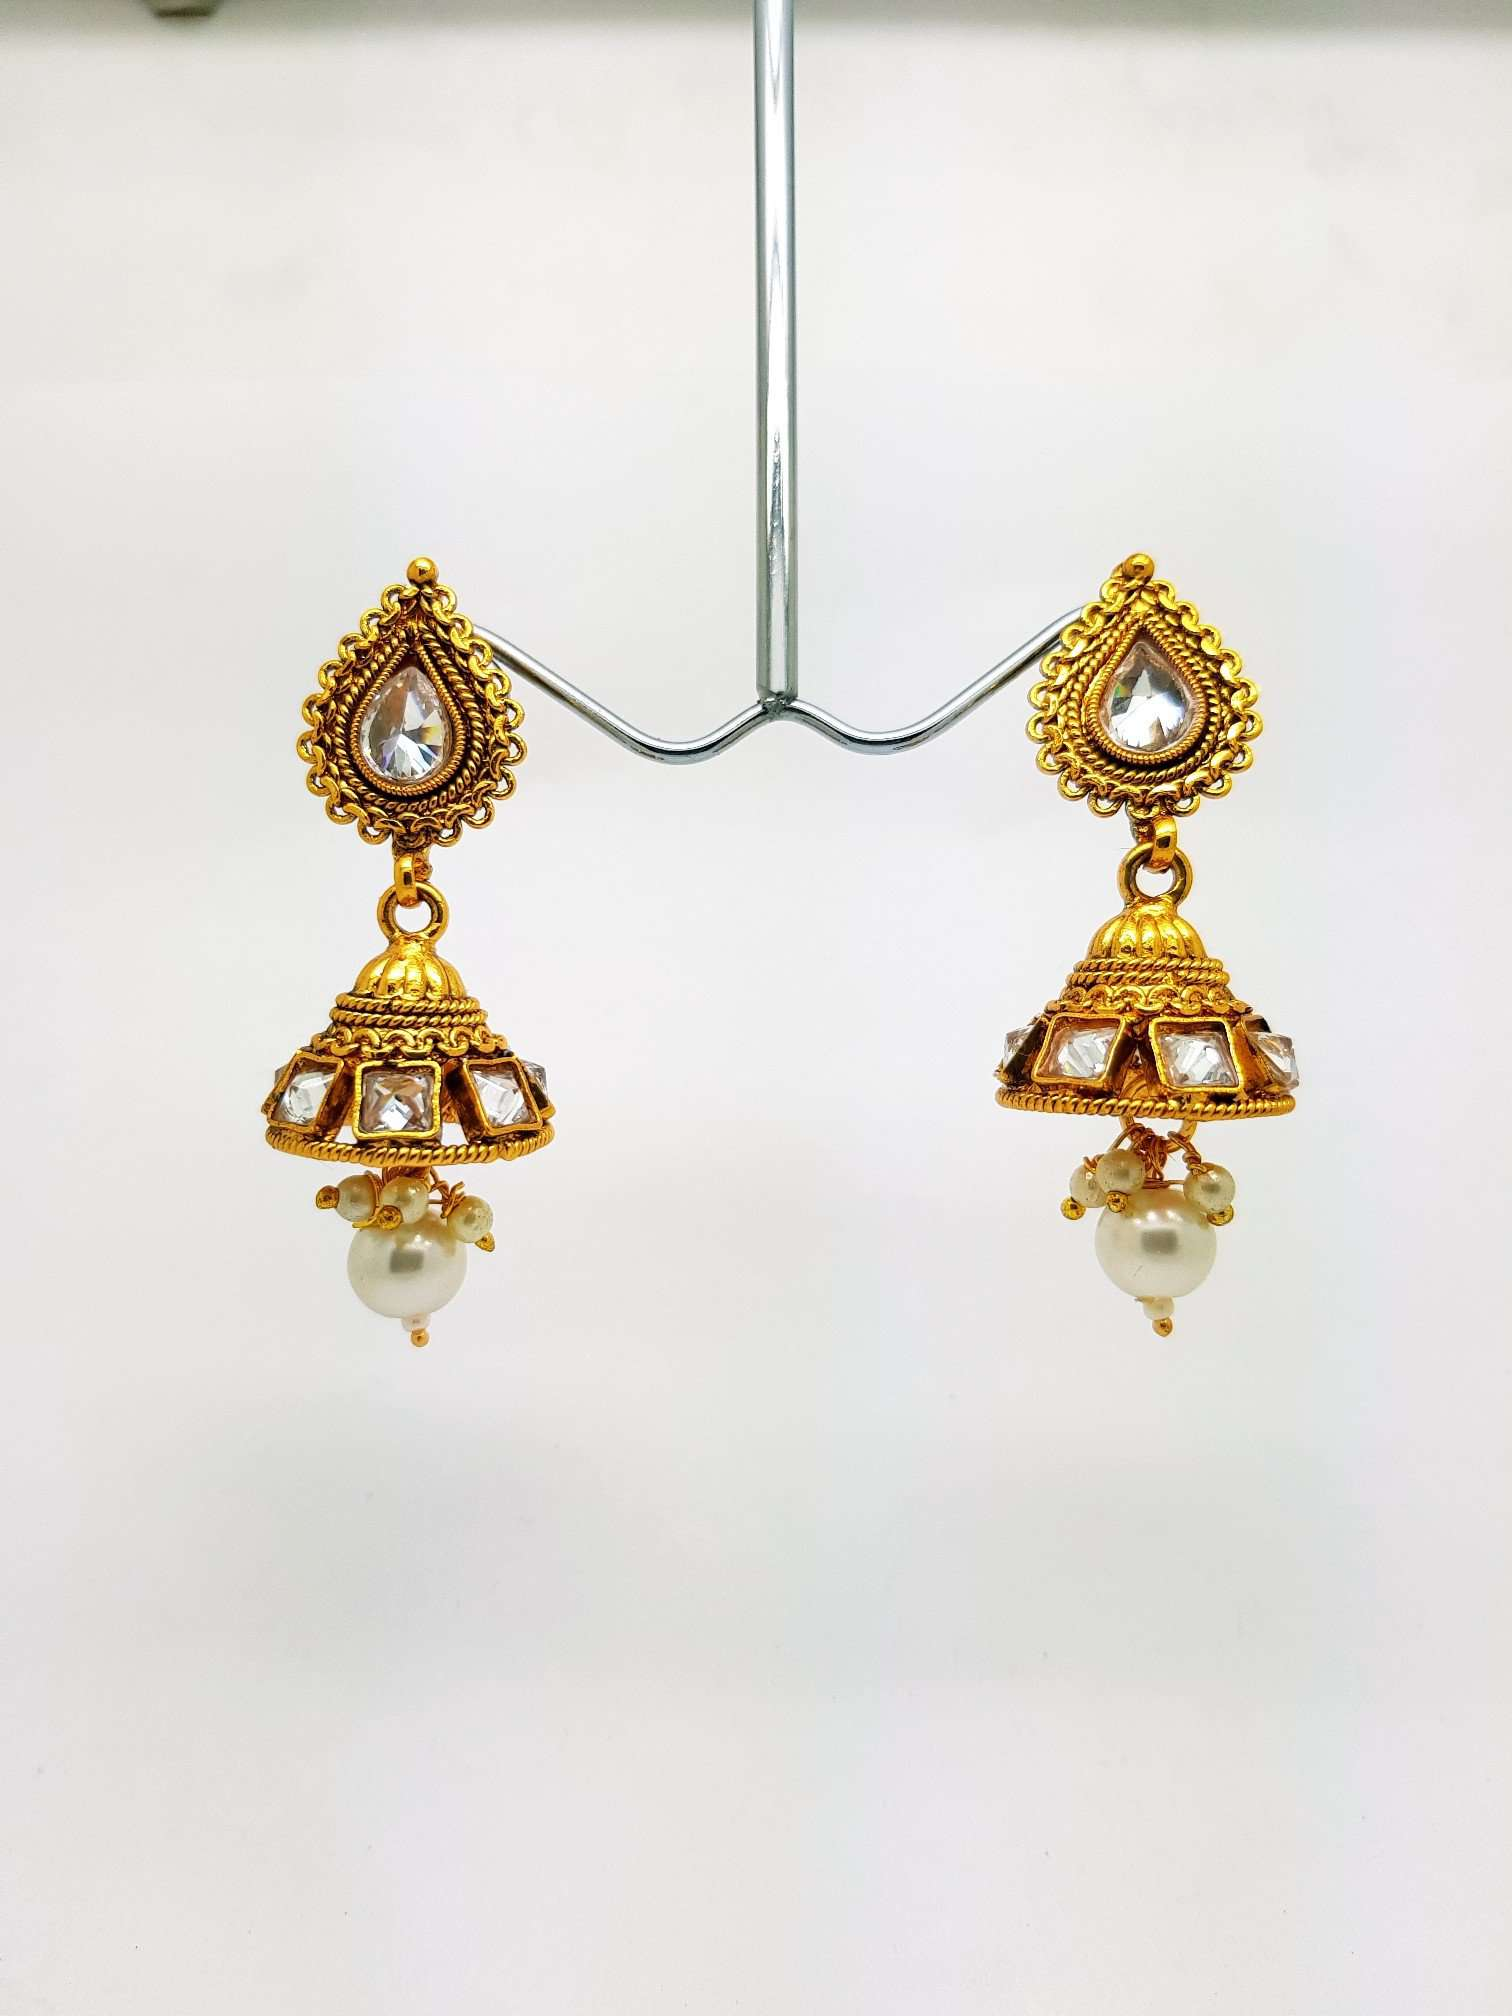 Small Jhumki Earrings - Bollywood - Fancy Dress - KAJ576VP 0918 - Prachy Creations